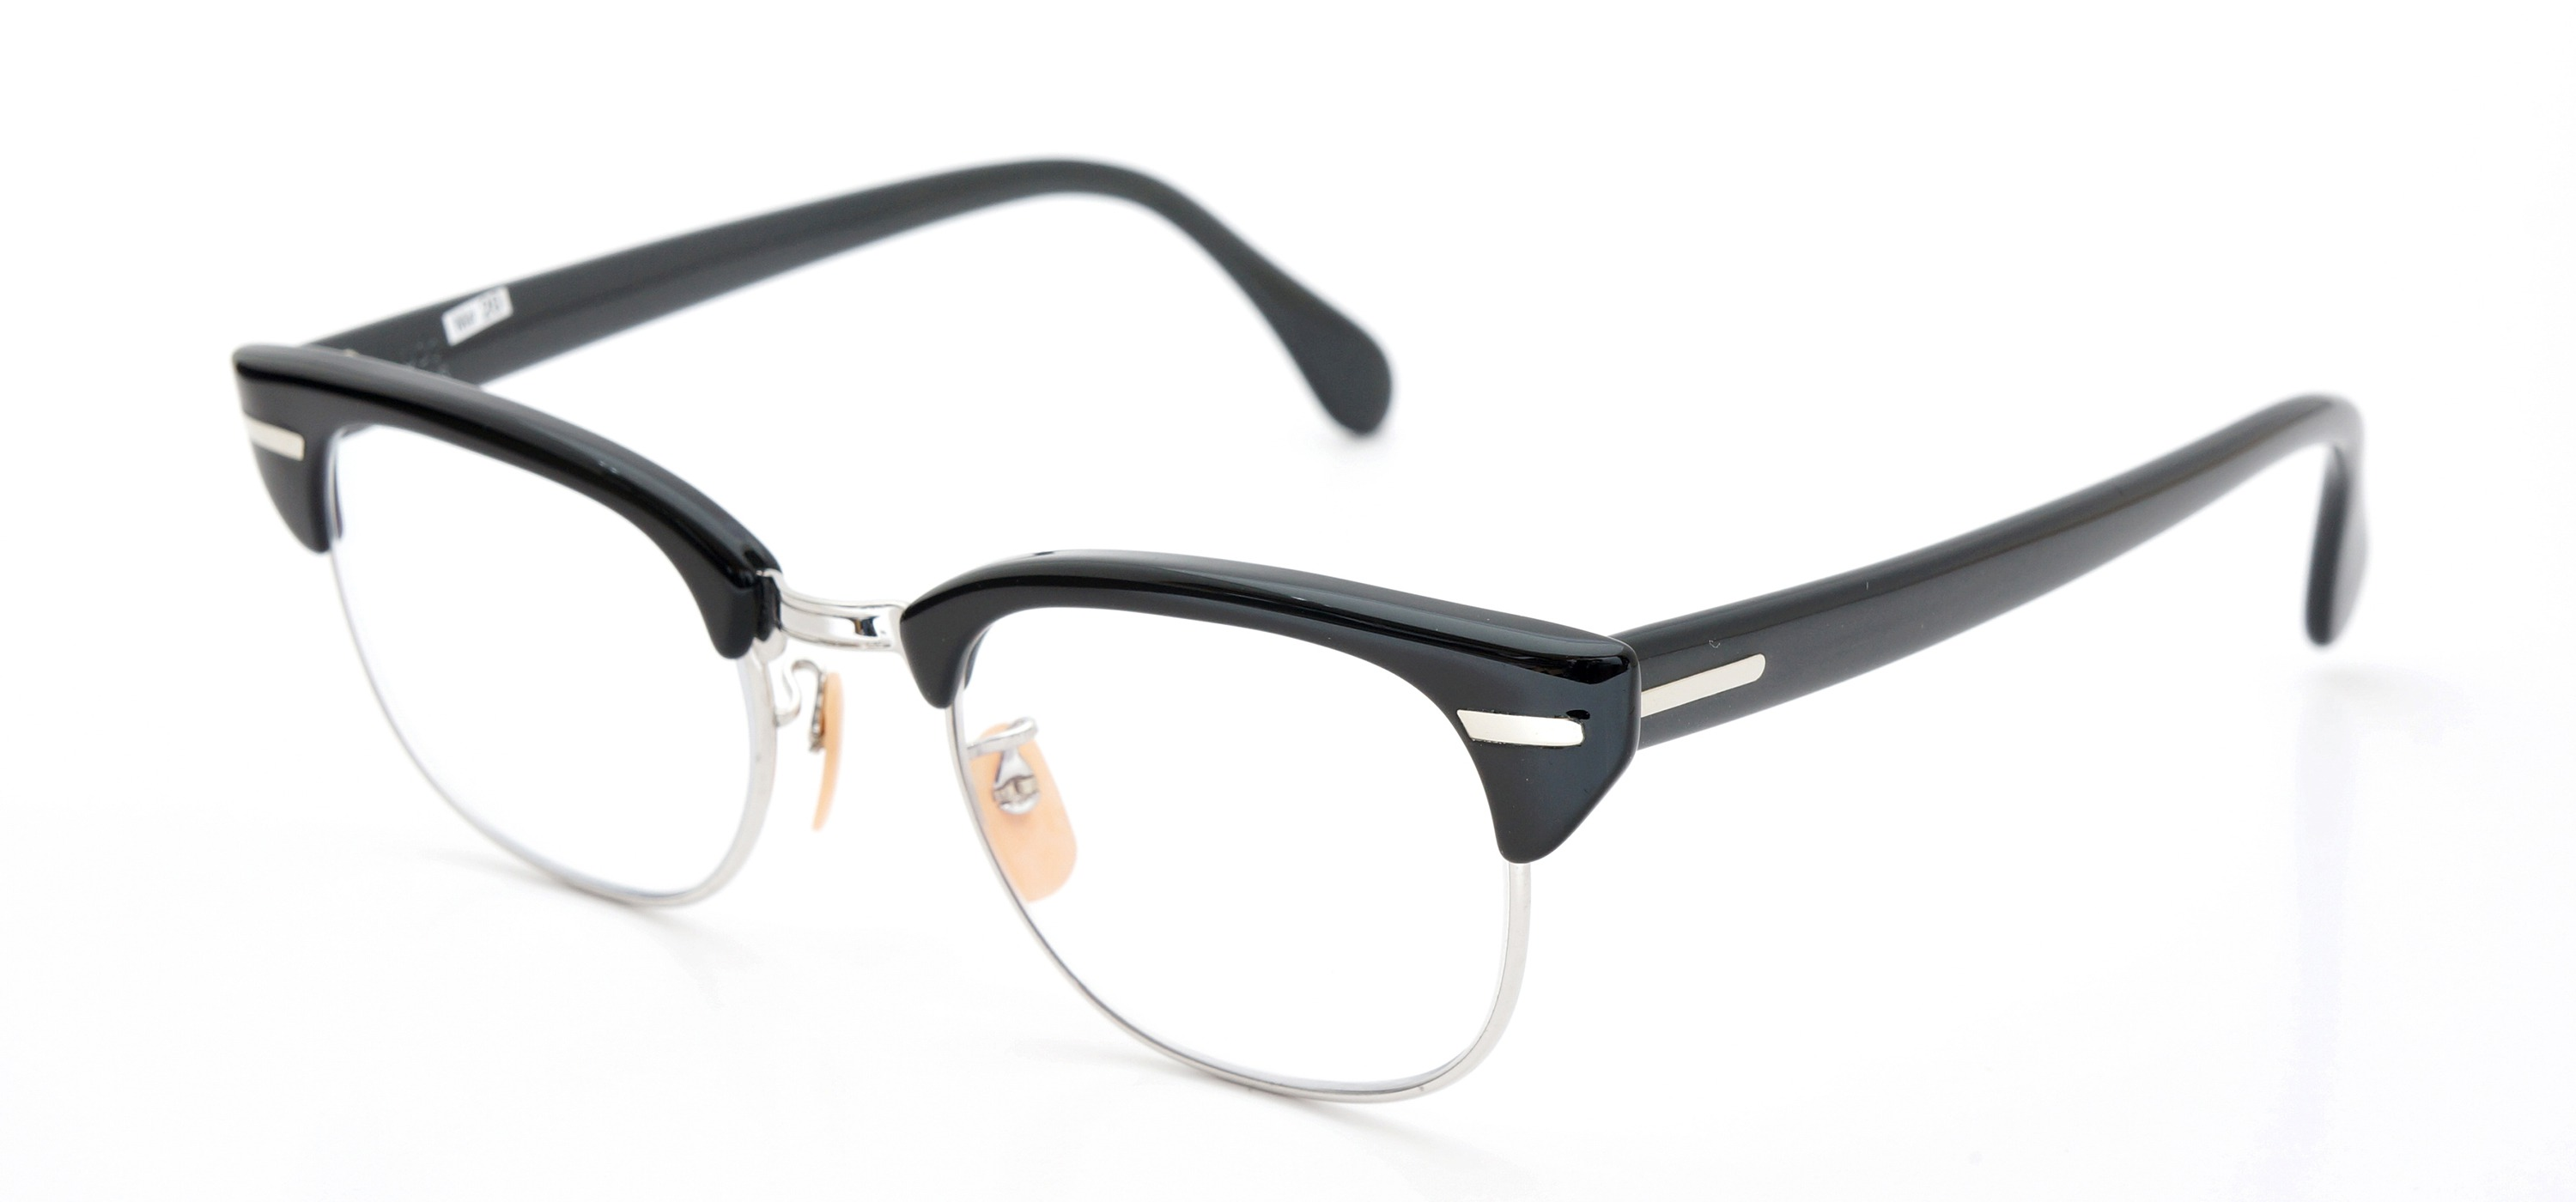 The Spectacle メガネ 1950s-60s Universal Combination UOC-600E Grey-Stripe WG 48-20 イメージ3